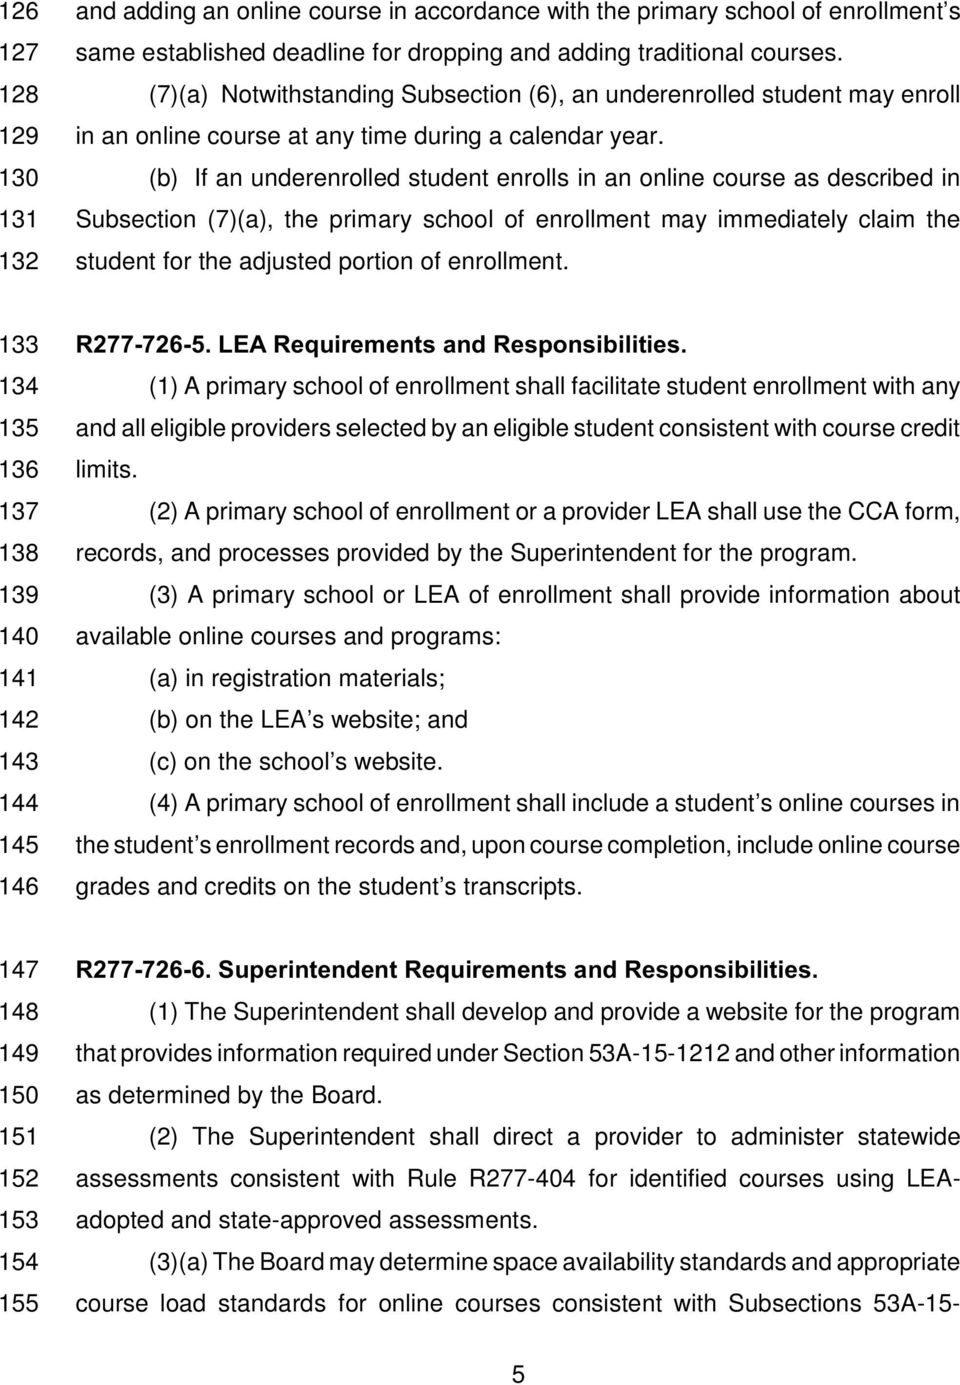 130 (b) If an underenrolled student enrolls in an online course as described in 131 Subsection (7)(a), the primary school of enrollment may immediately claim the 132 student for the adjusted portion